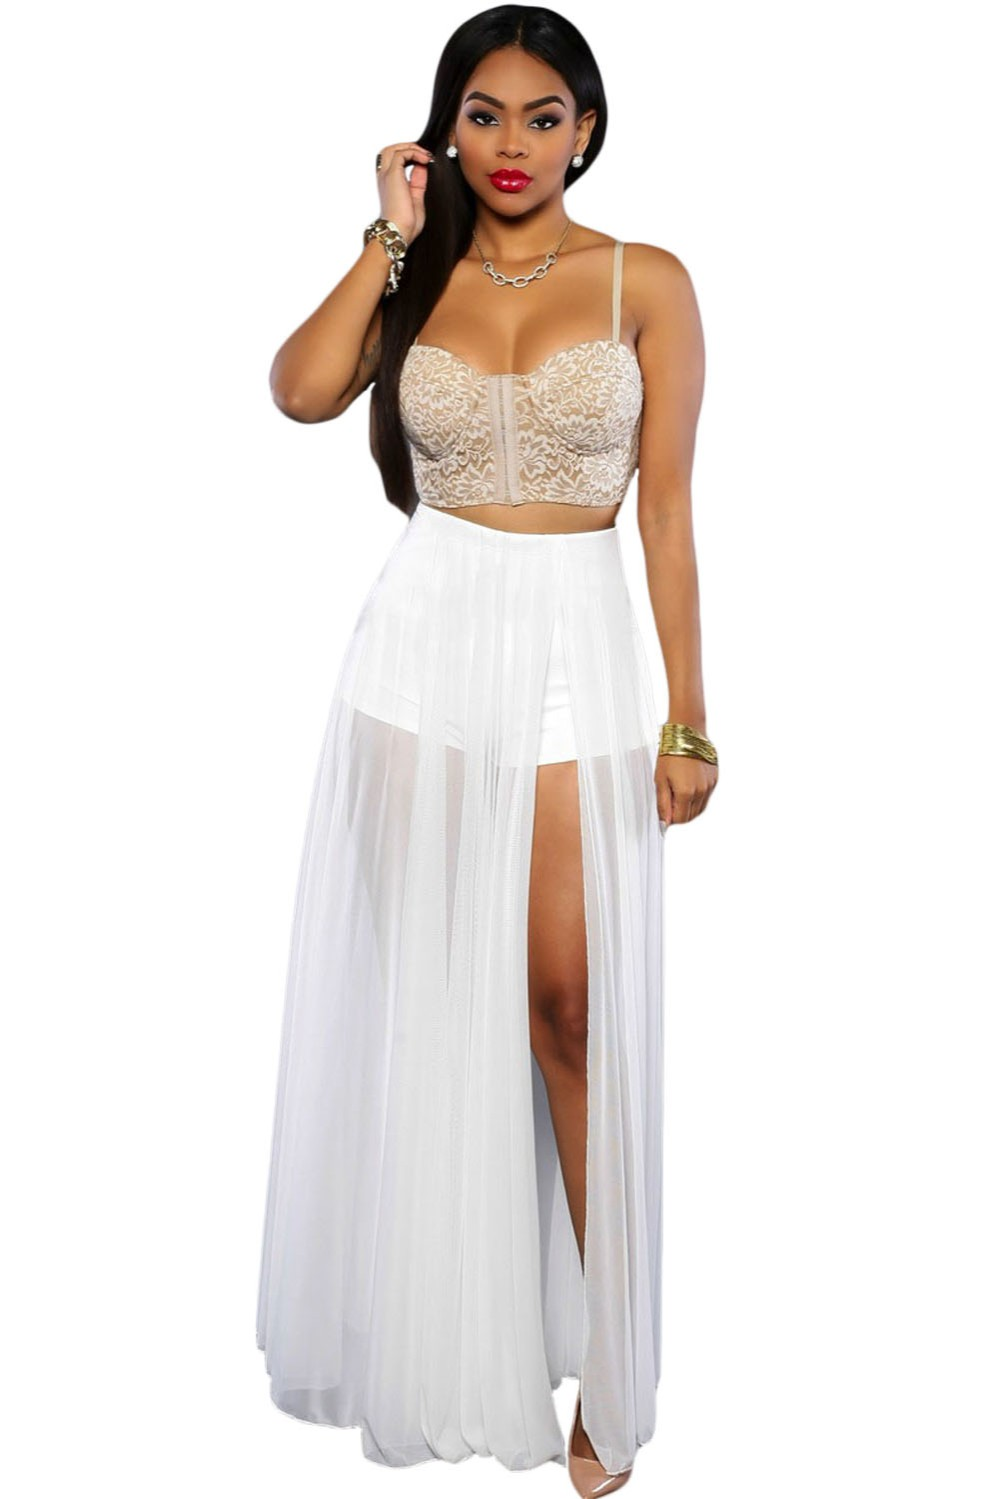 White-Sheer-Slit-Panty-Luxe-Maxi-Skirt-LC65000-1-1